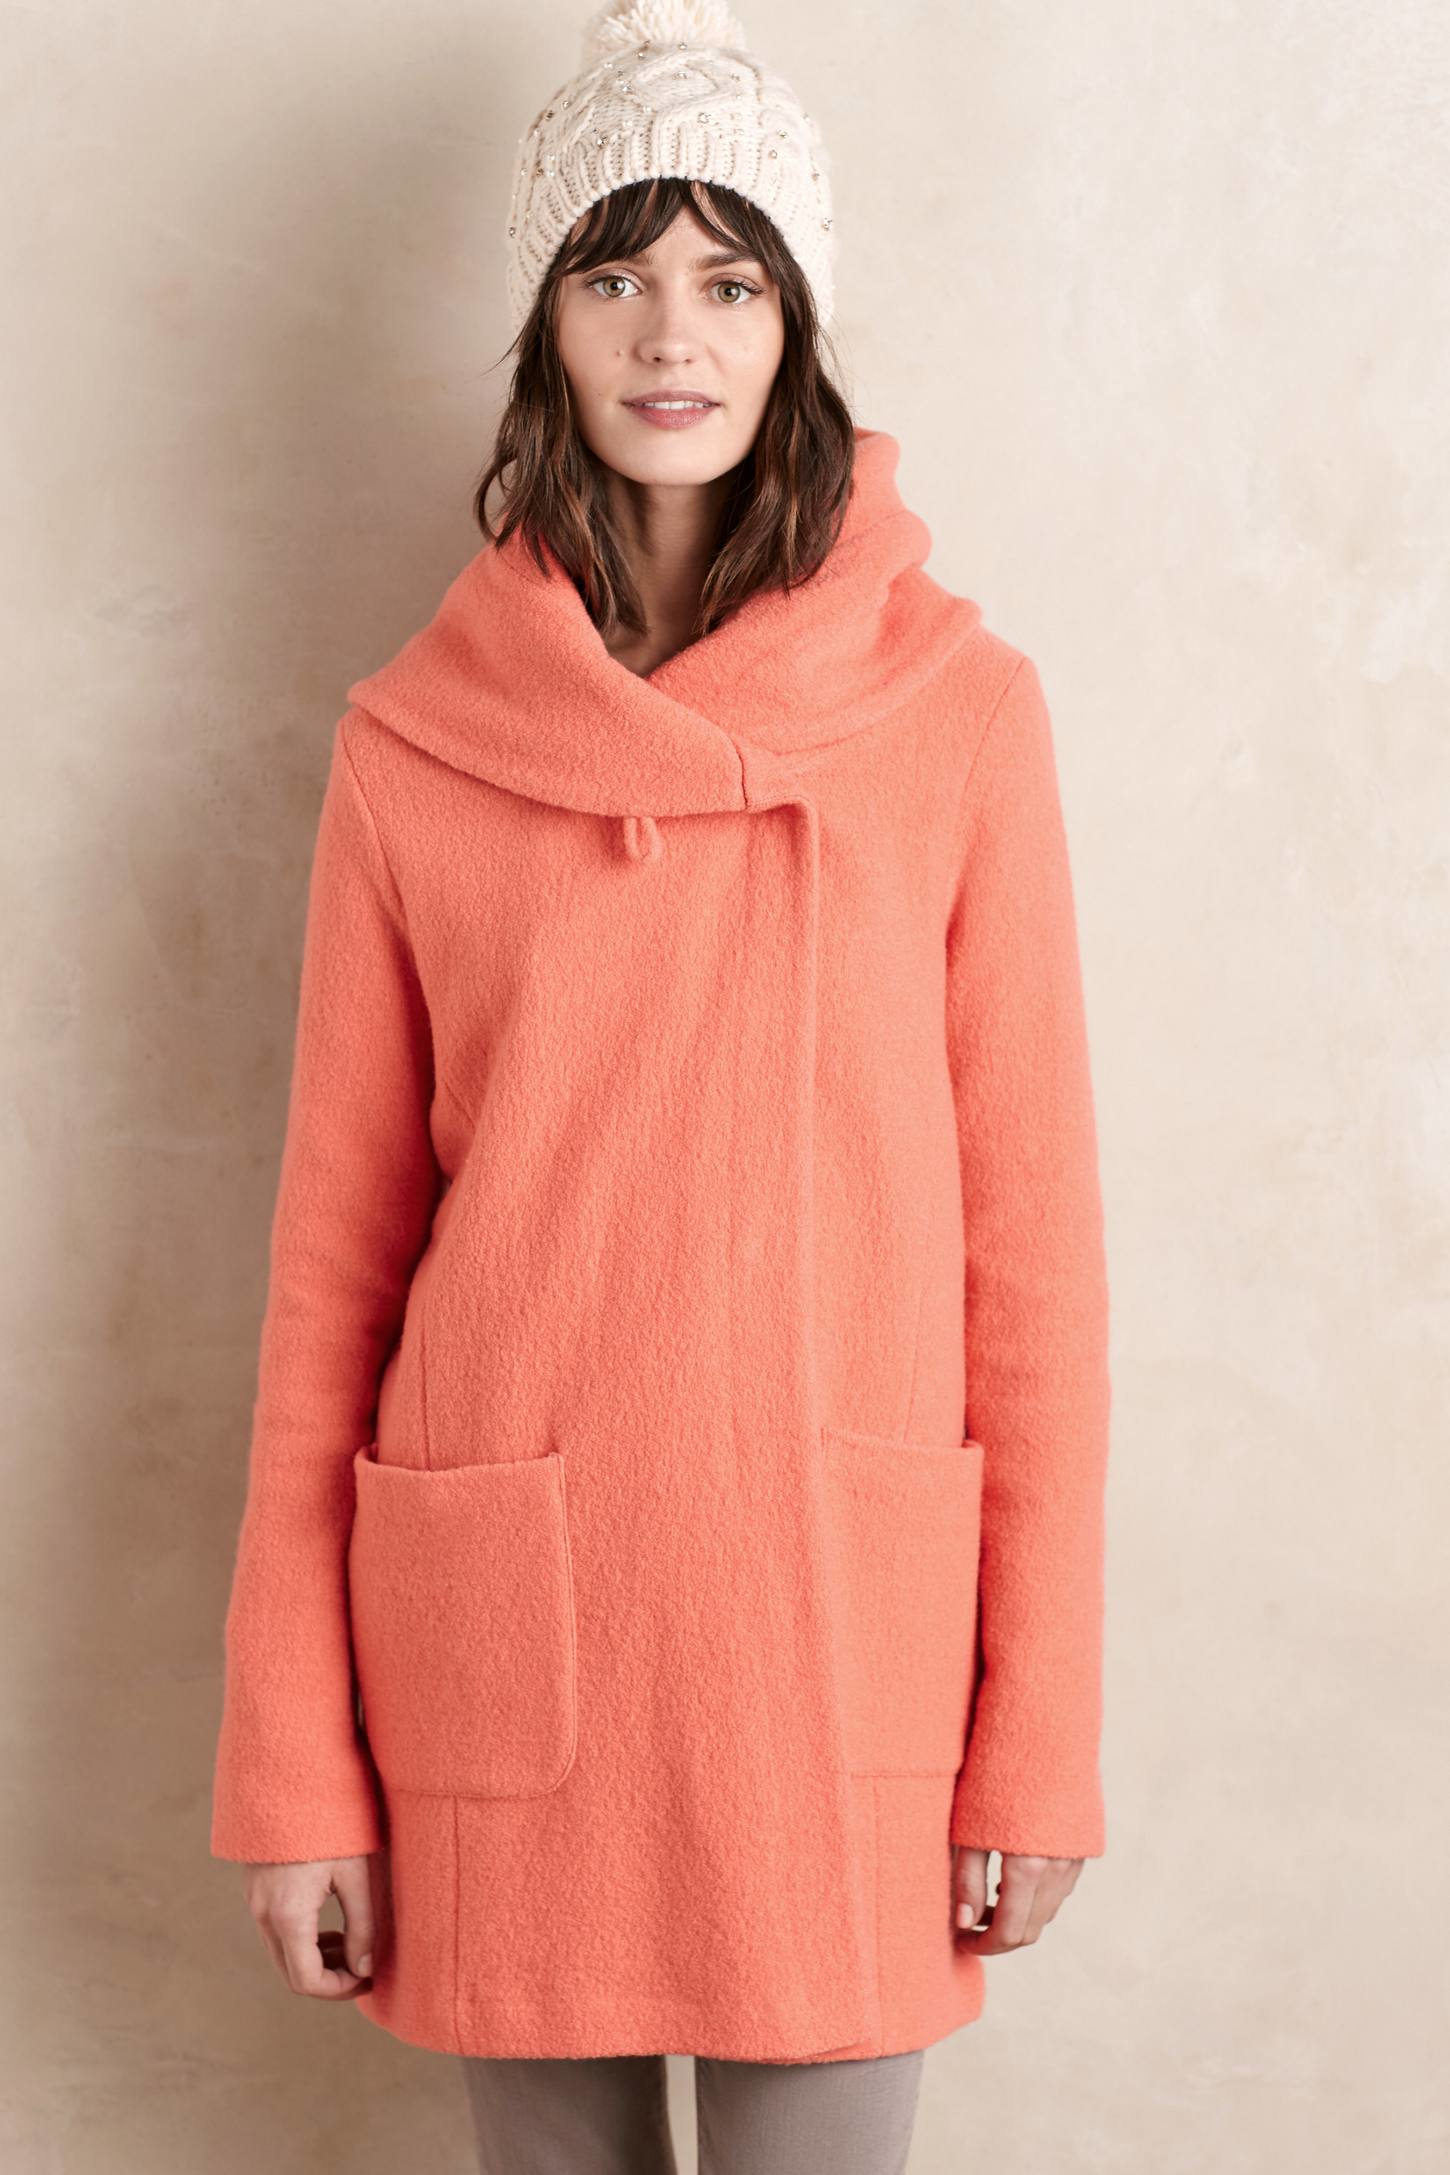 Moth Boiled Wool Sweater Coat in Pink | Lyst